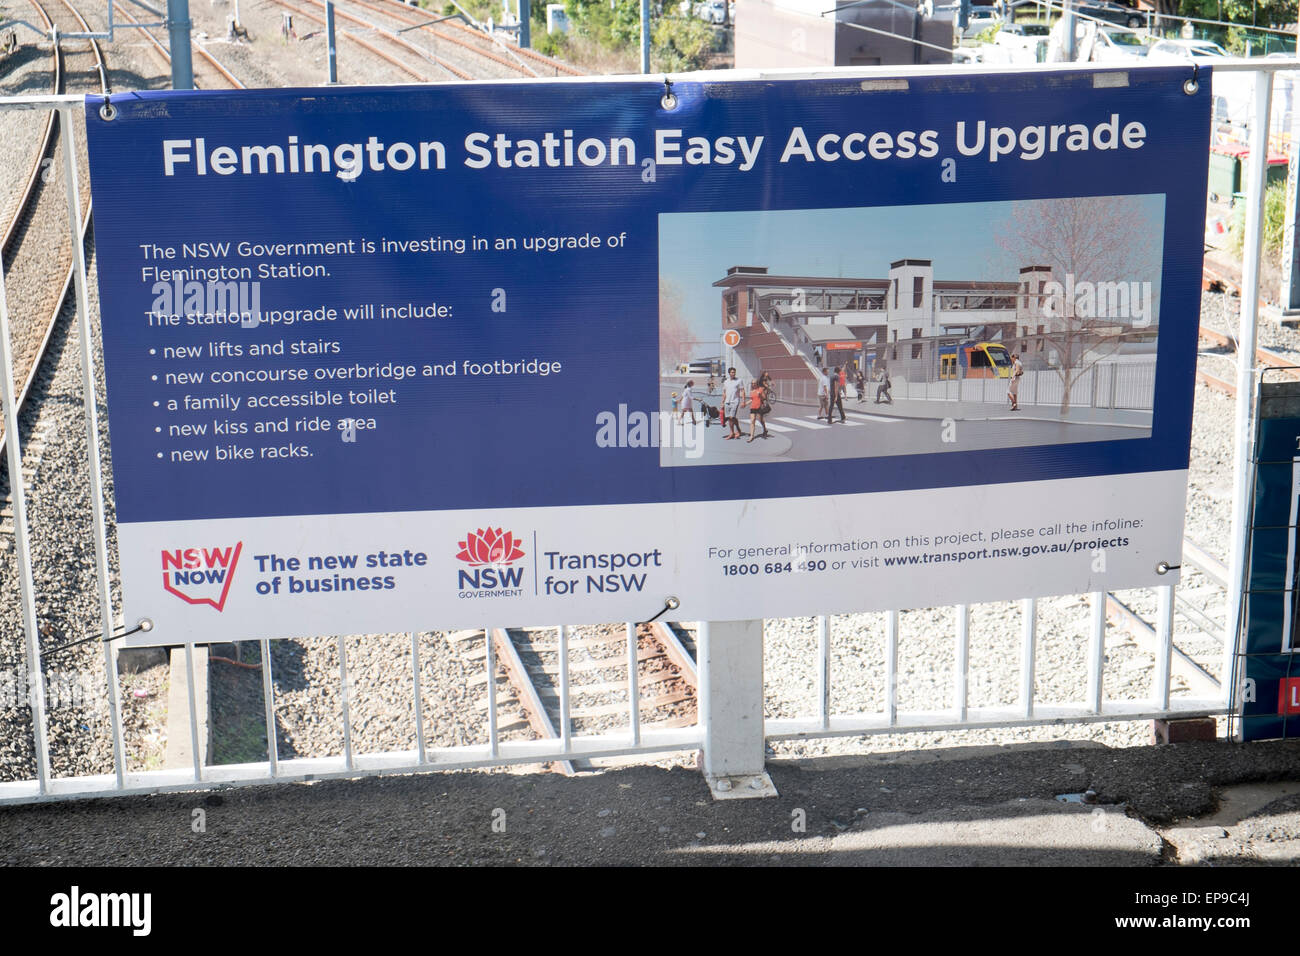 Easy access program of works underway by  new south wales government at Flemington railway station in western sydney,australia - Stock Image